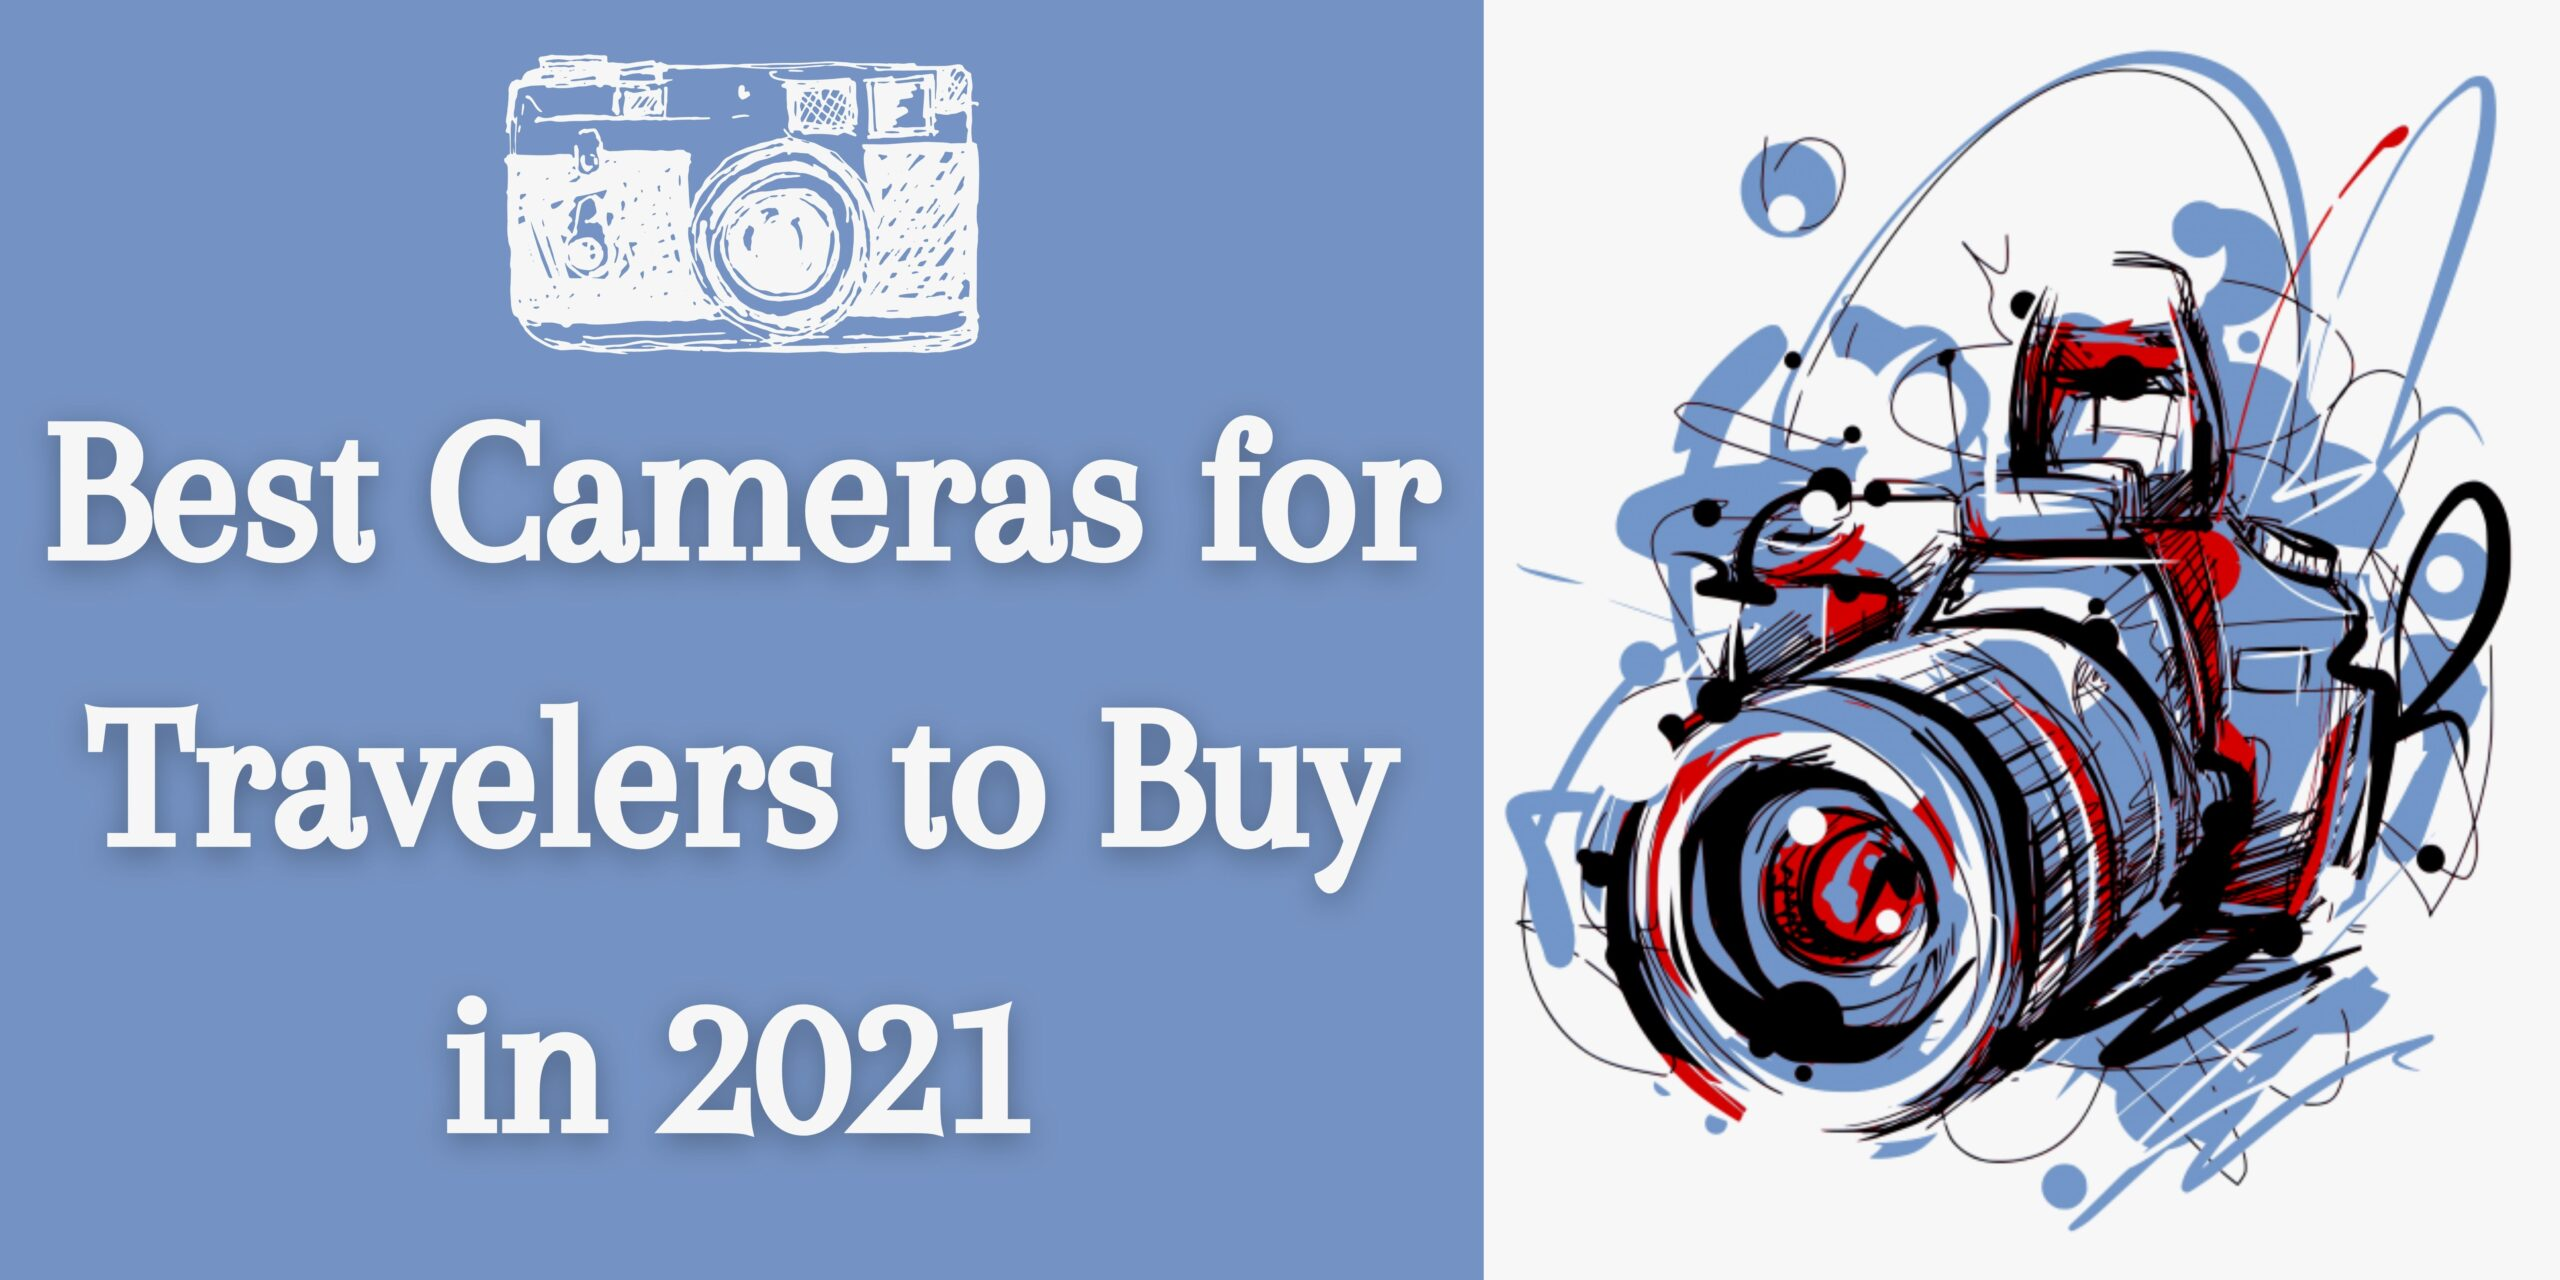 7 Best Cameras for Travelers to Buy in 2021